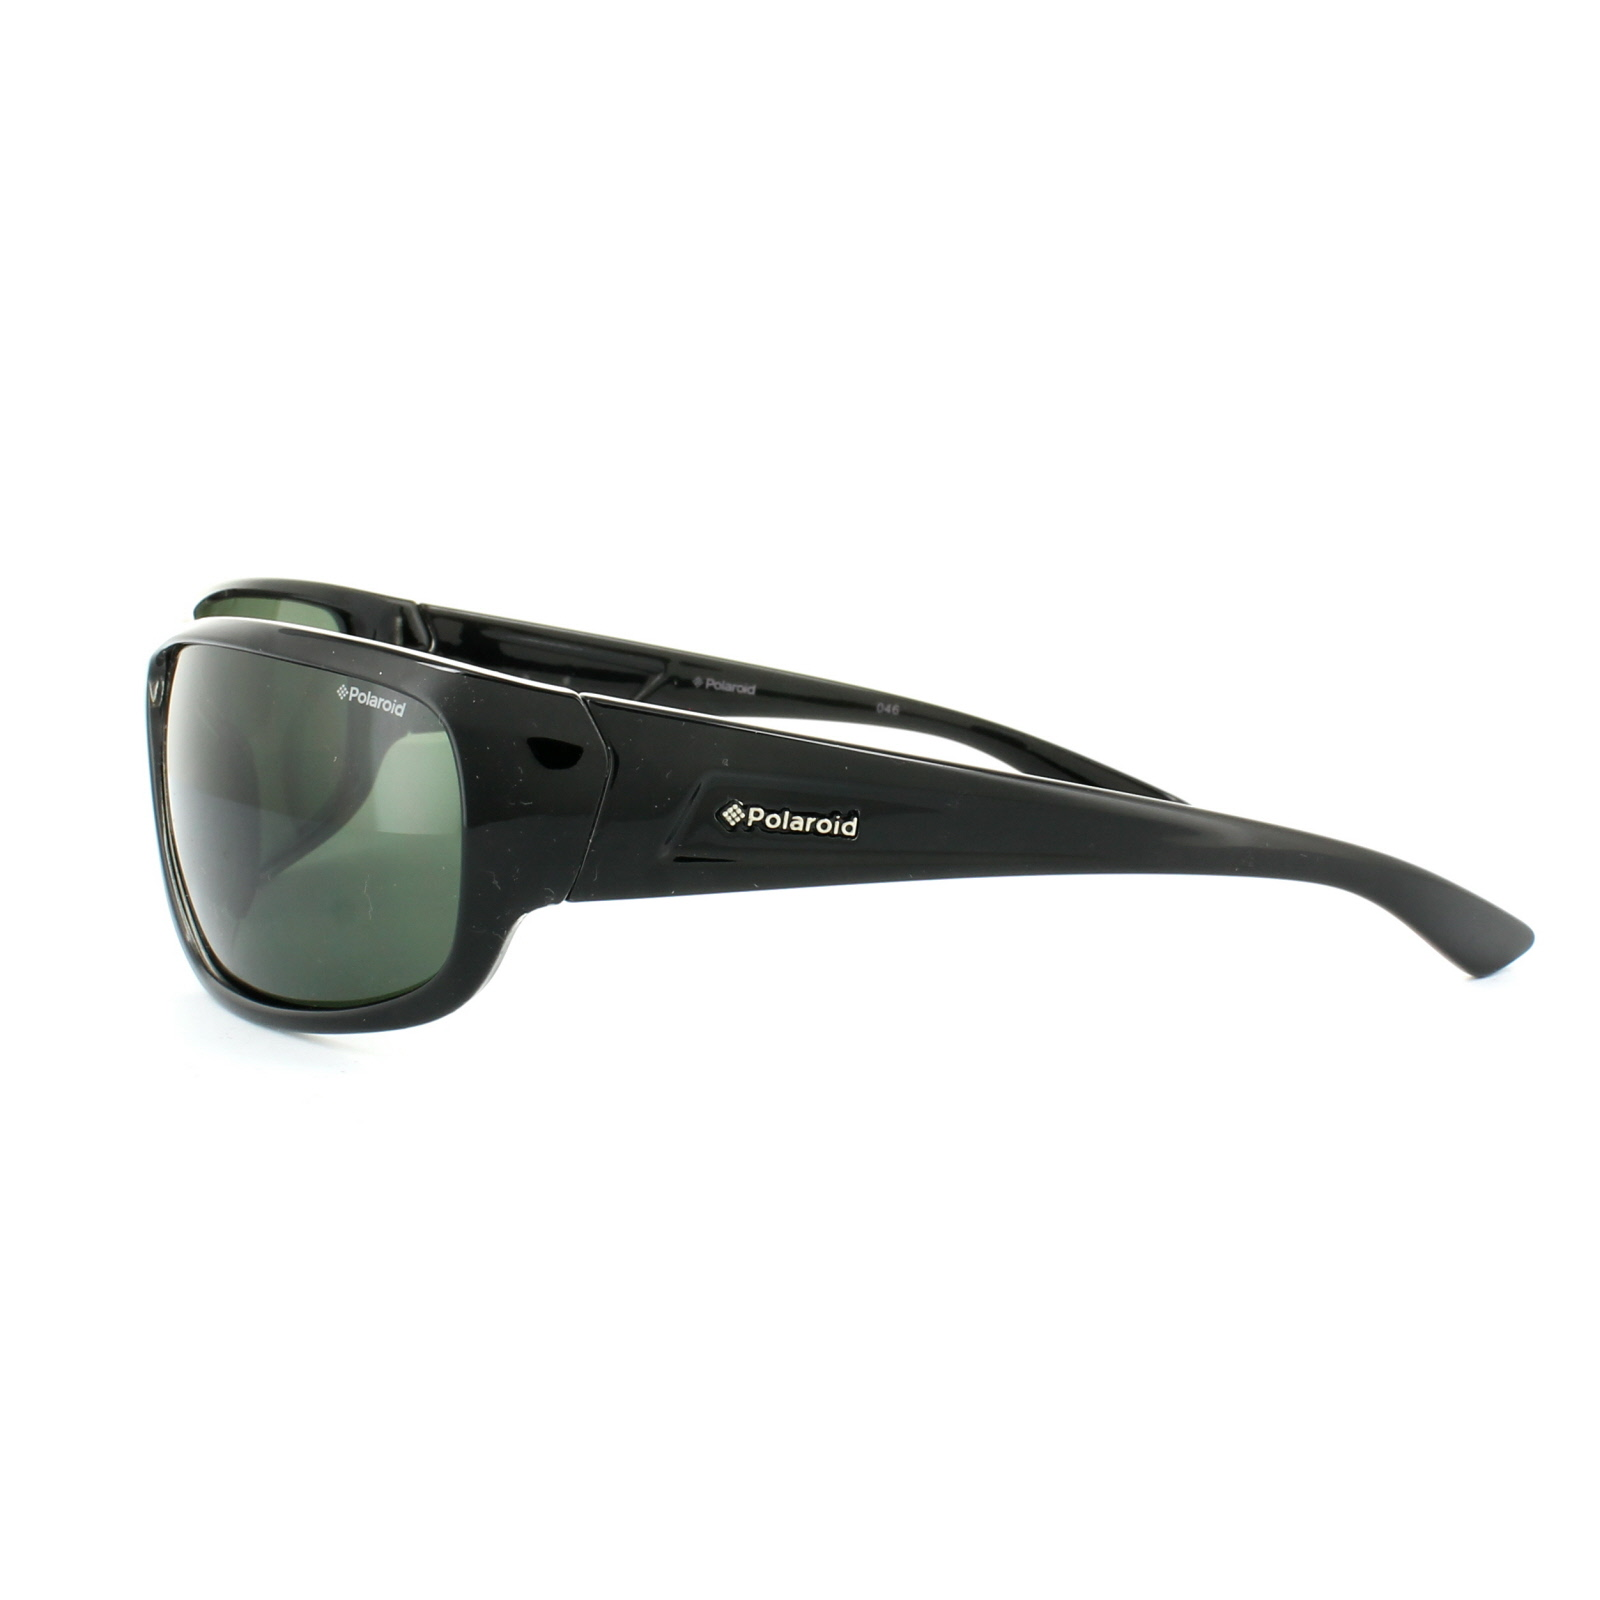 Sentinel Polaroid Sport Sunglasses P8414 KIH RC Black Green Polarized 69b89cc916